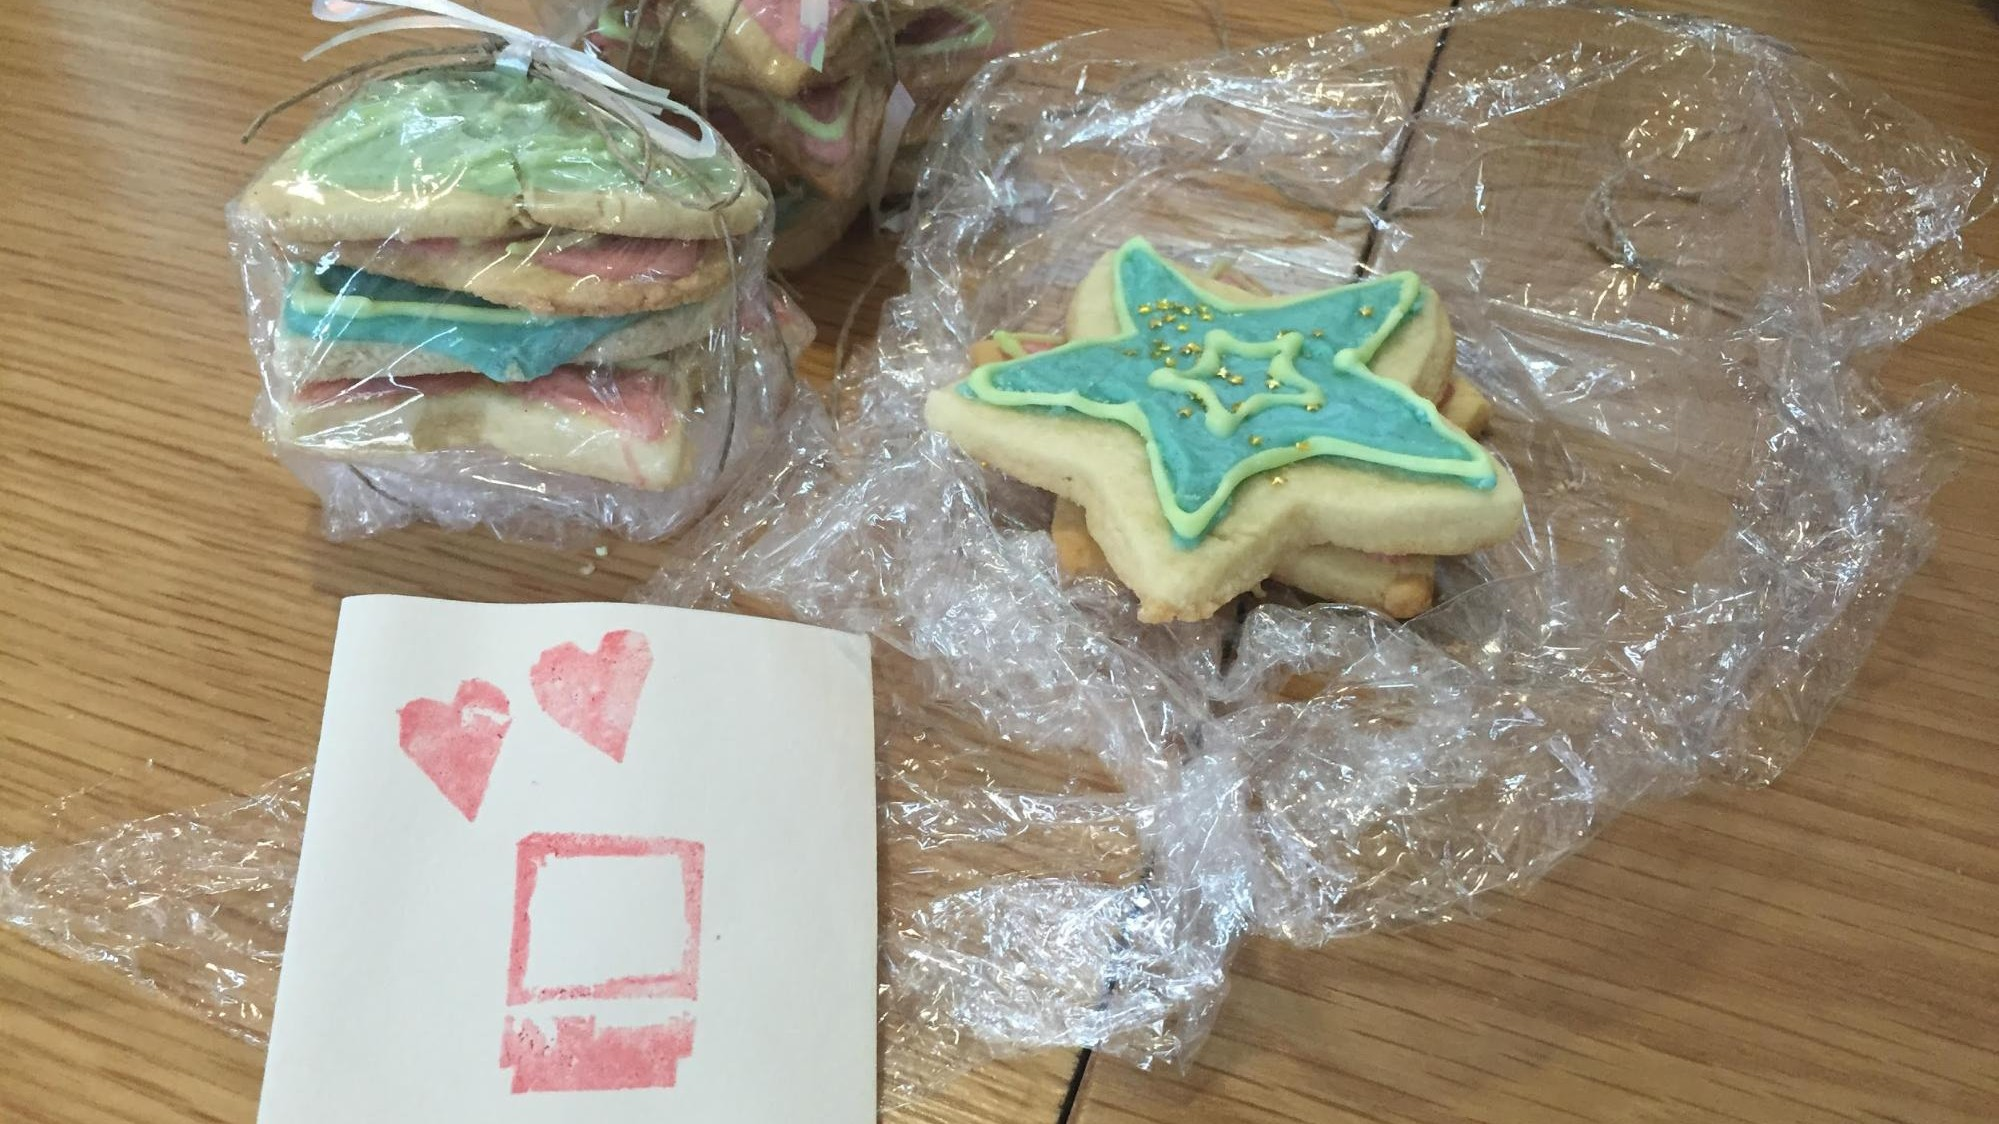 I Bought Adorable Cookies on the Deep Web